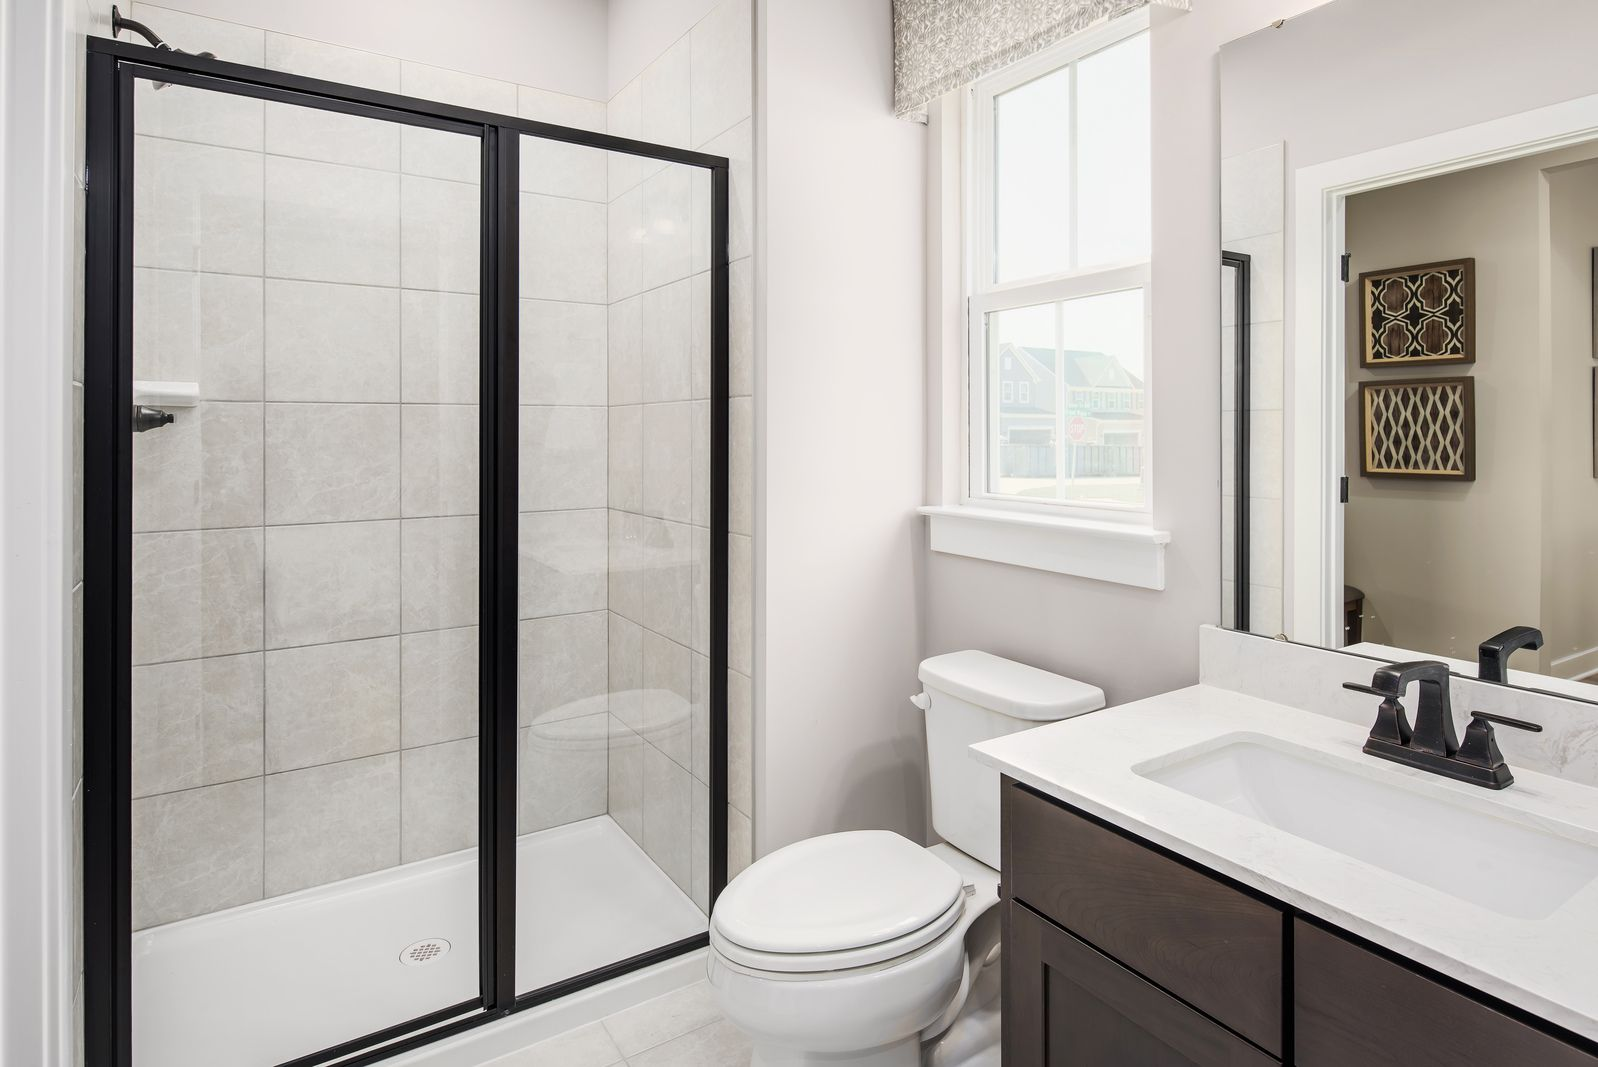 Bathroom featured in the Lehigh By Ryan Homes in York, PA